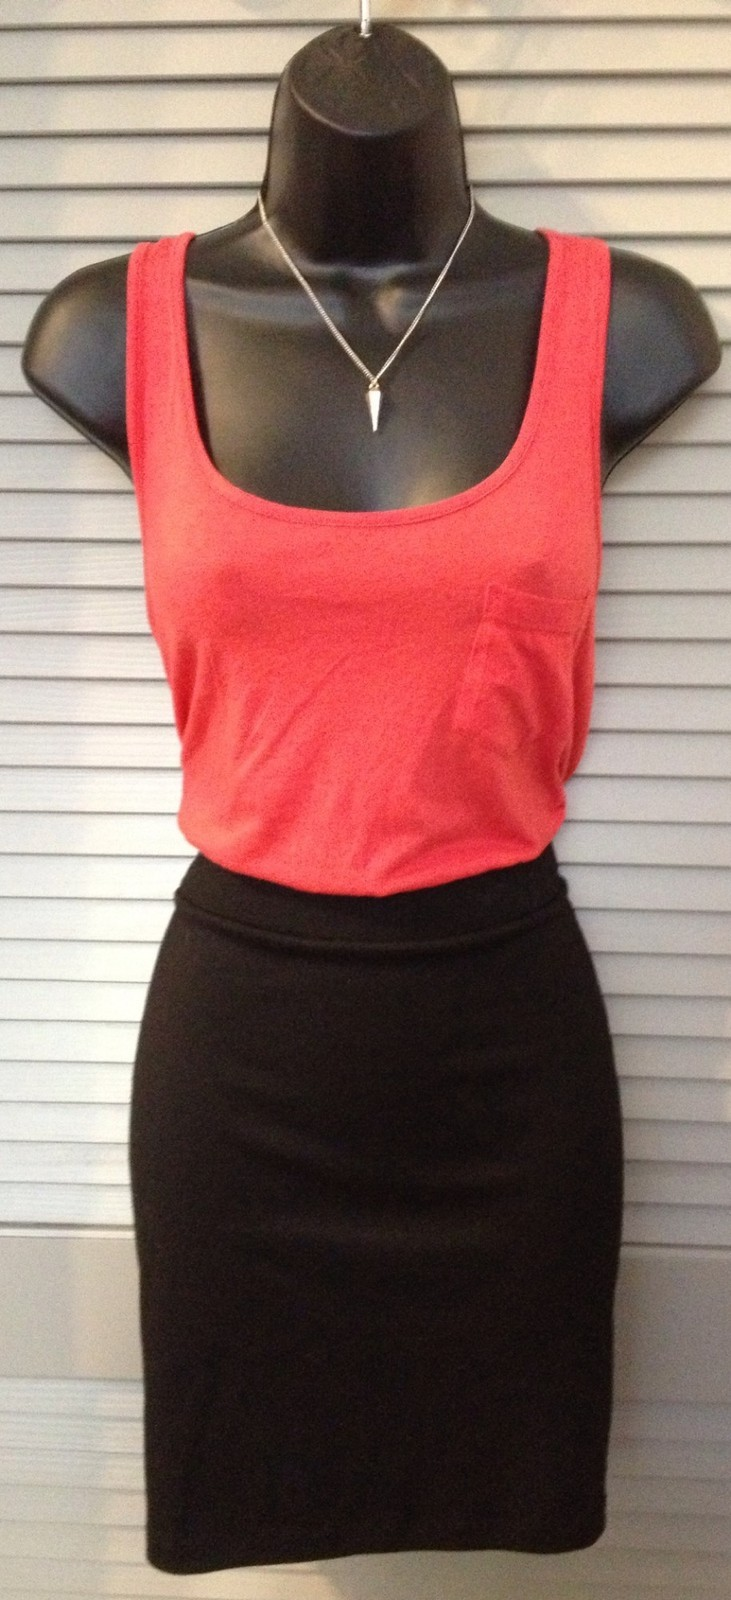 Women's Red and Black Tank Dress